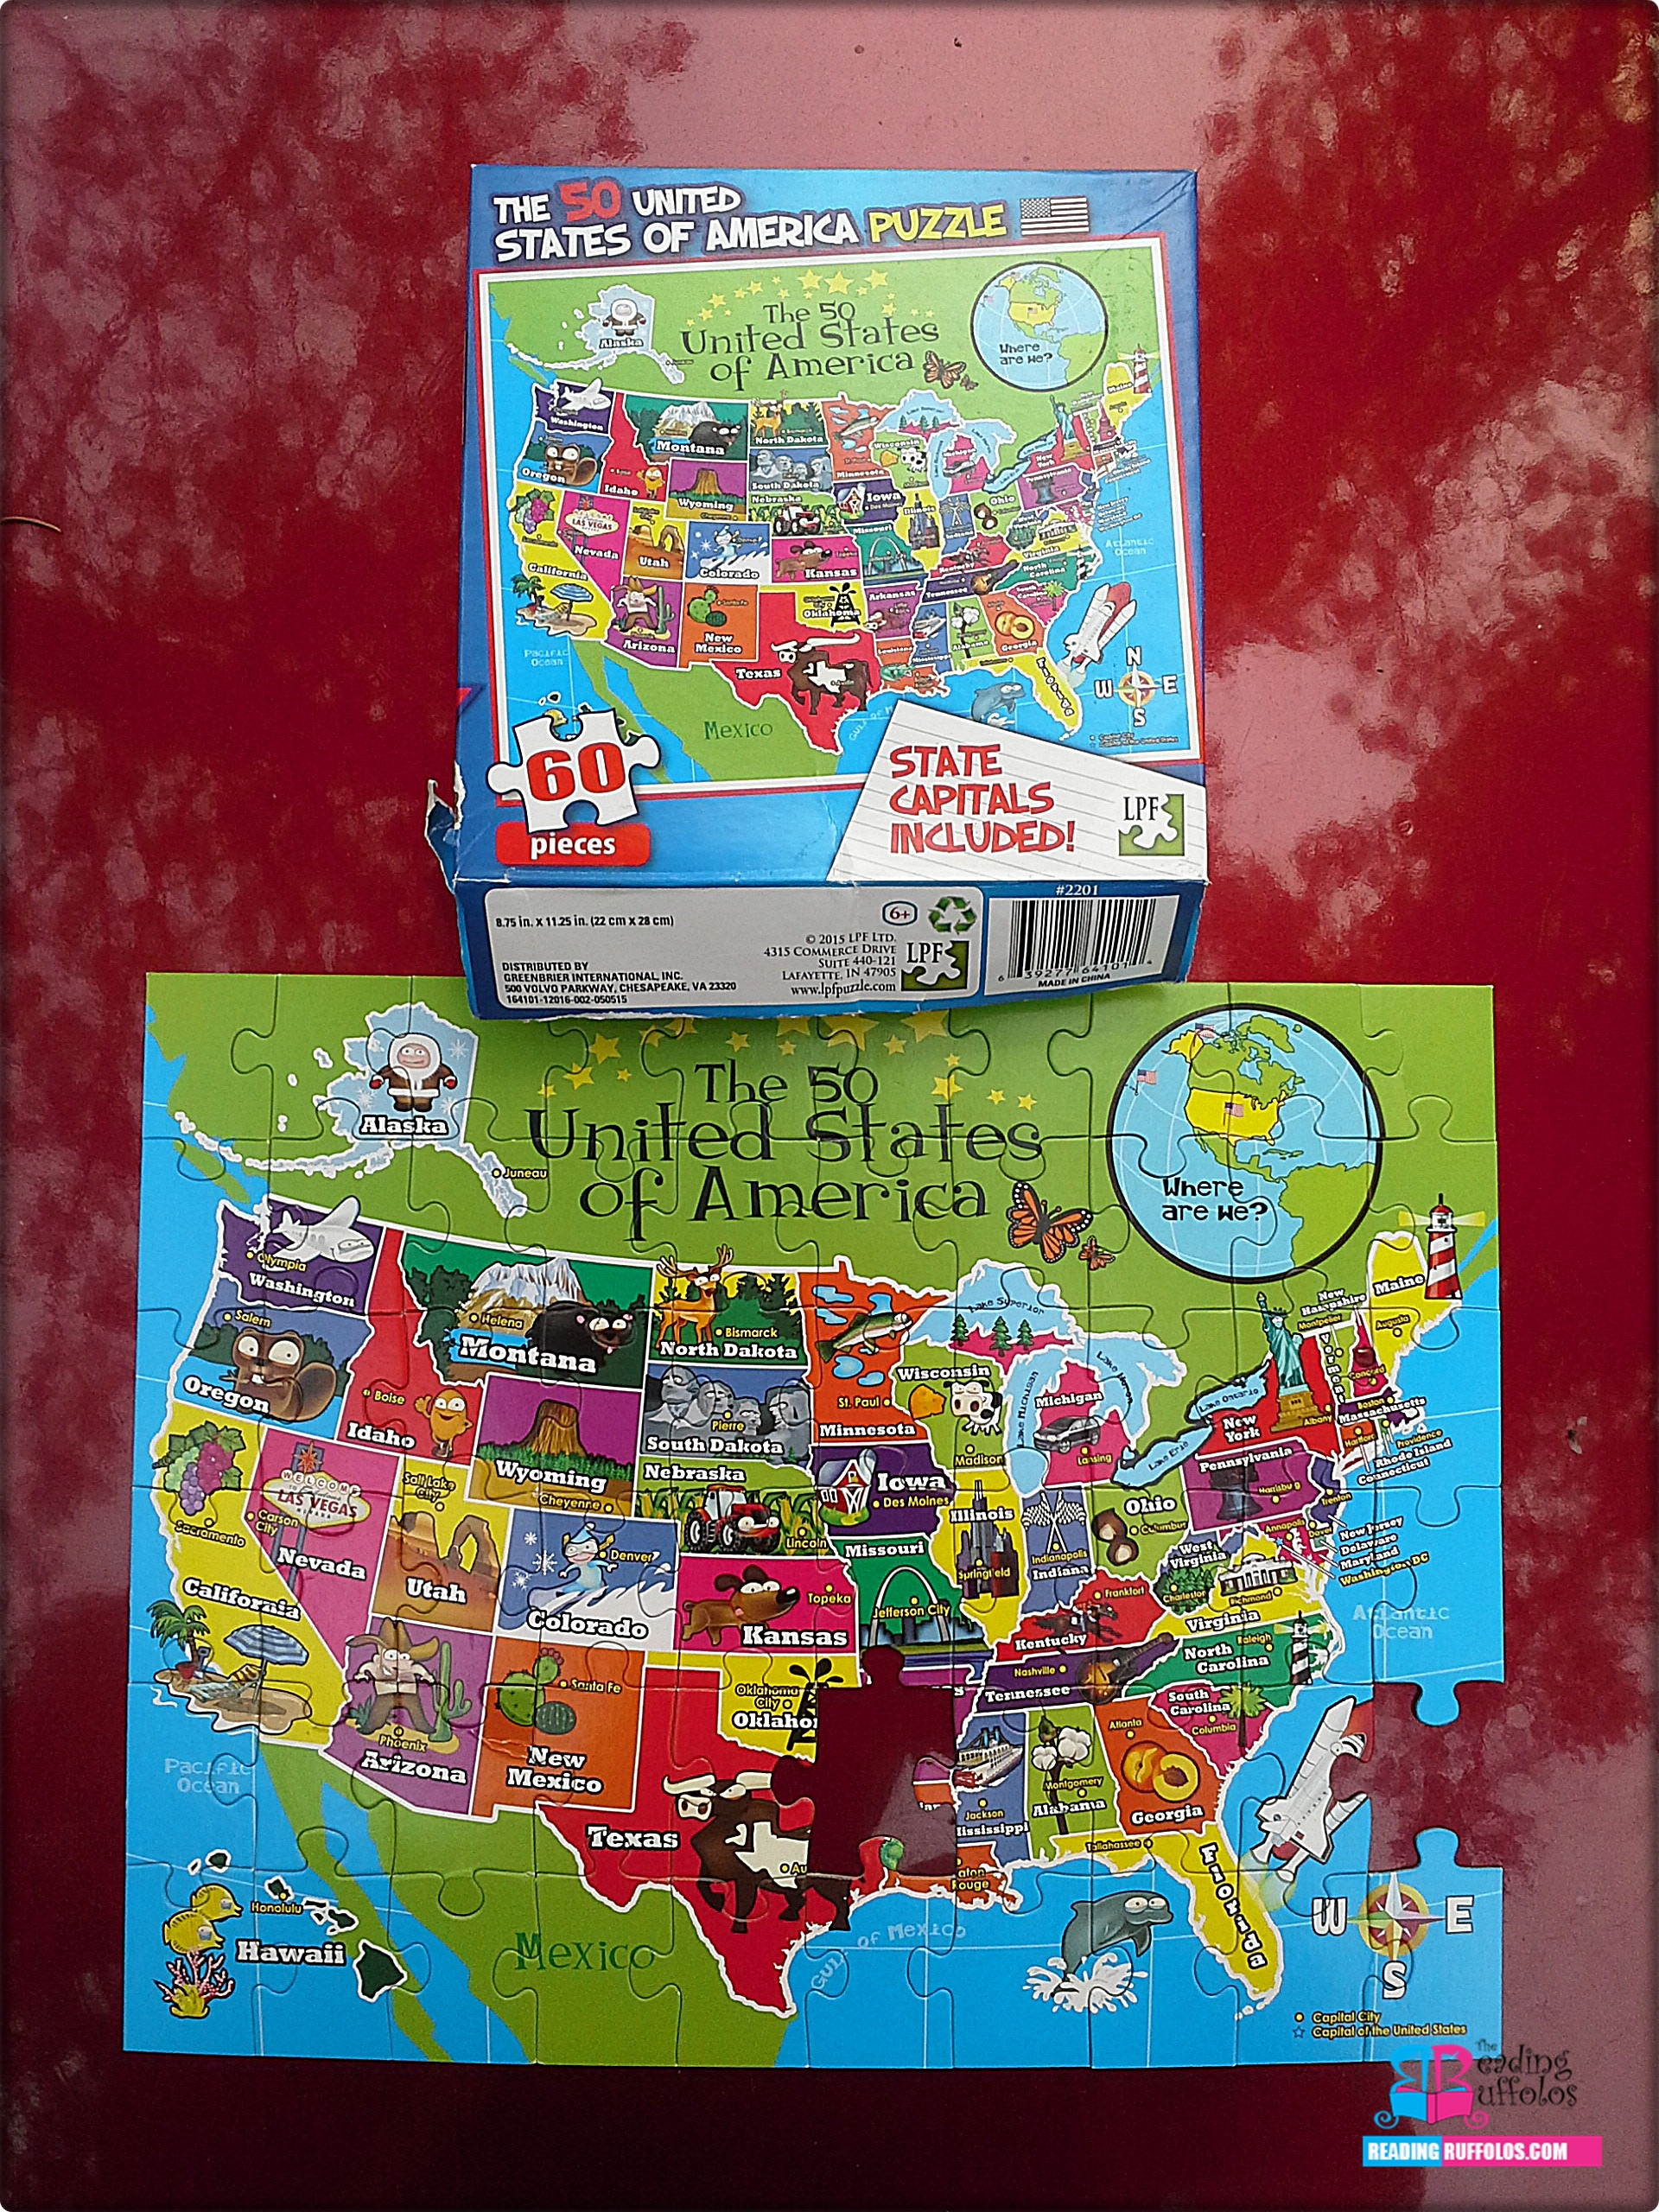 9 educational treasures you\'ll find at the Dollar Tree Store ...